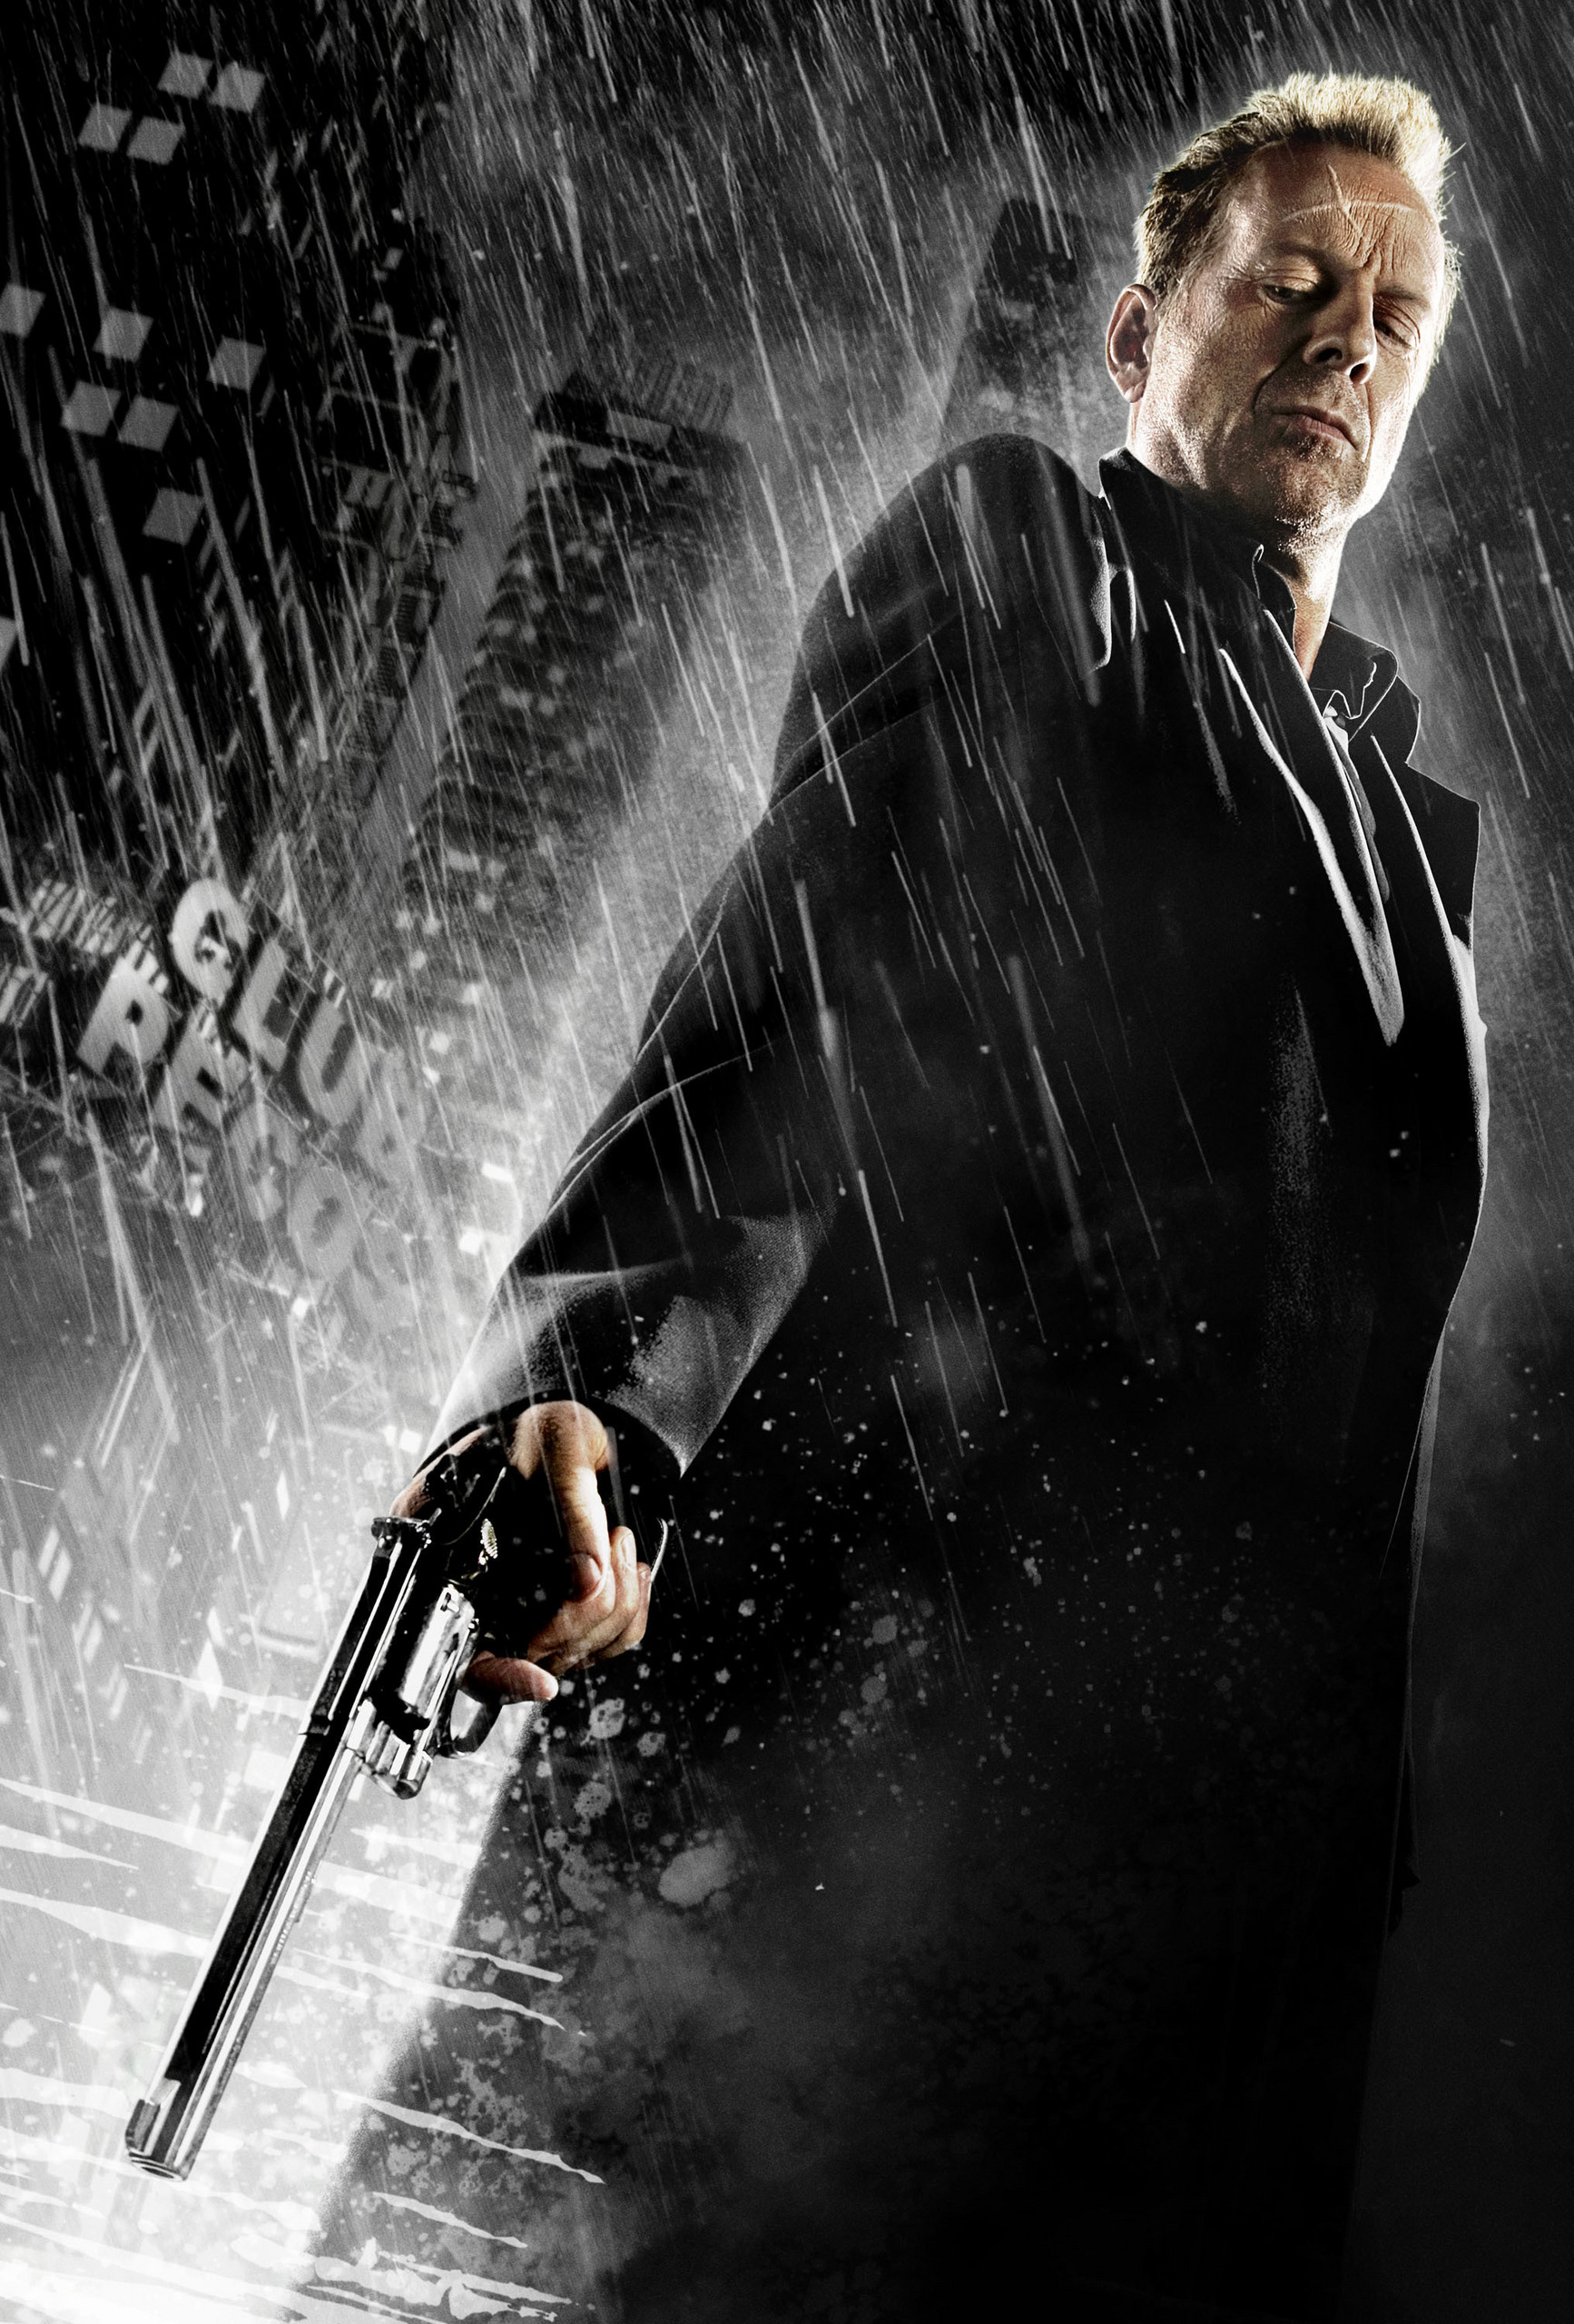 Sin City images John Hartigan HD wallpaper and background photos ...